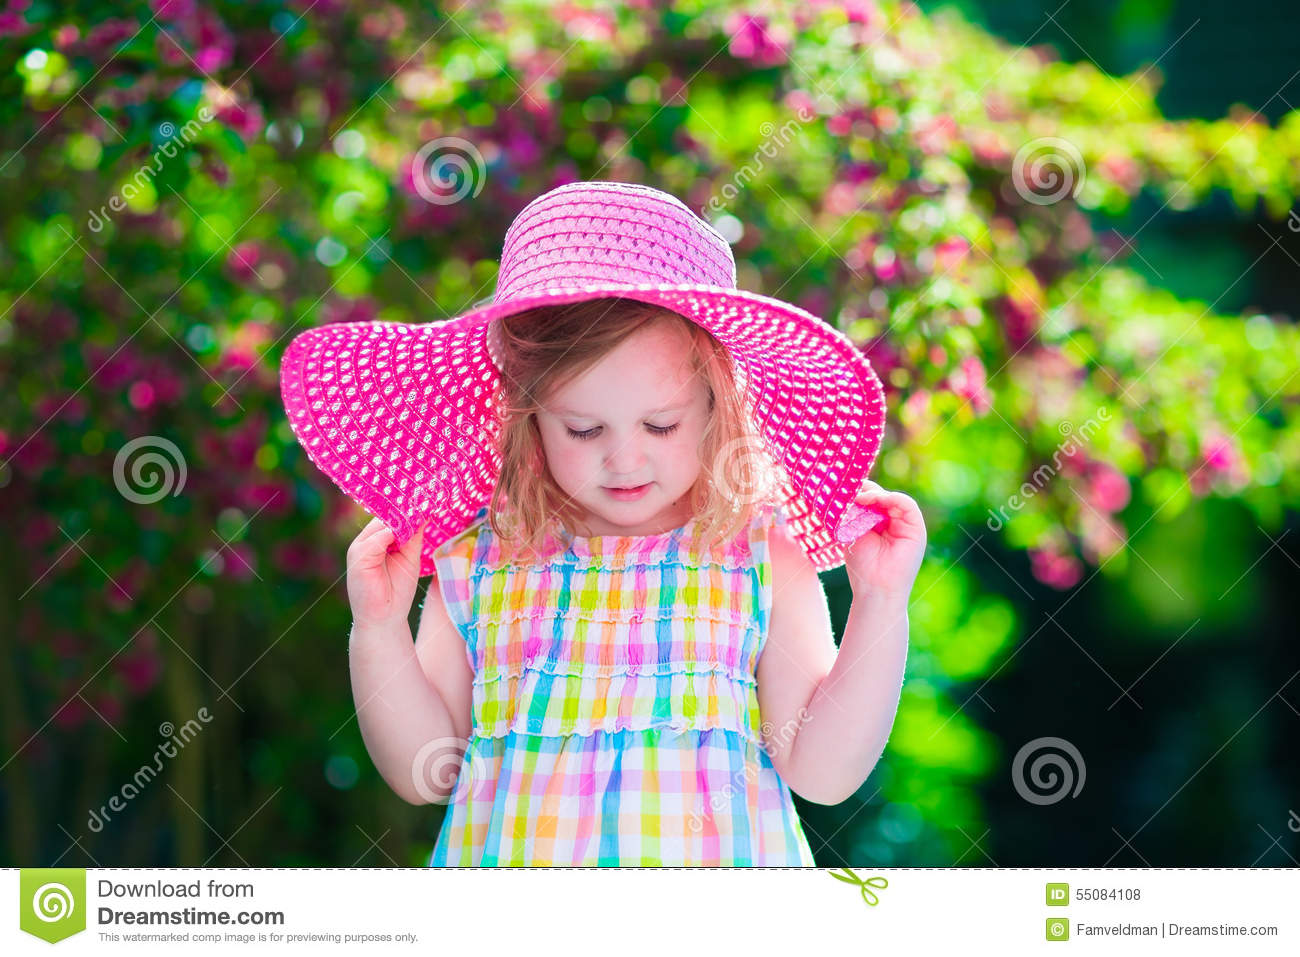 Beautiful Little Girl In A Hat In Blooming Summer Garden Stock Photo ... db4d6a57f35